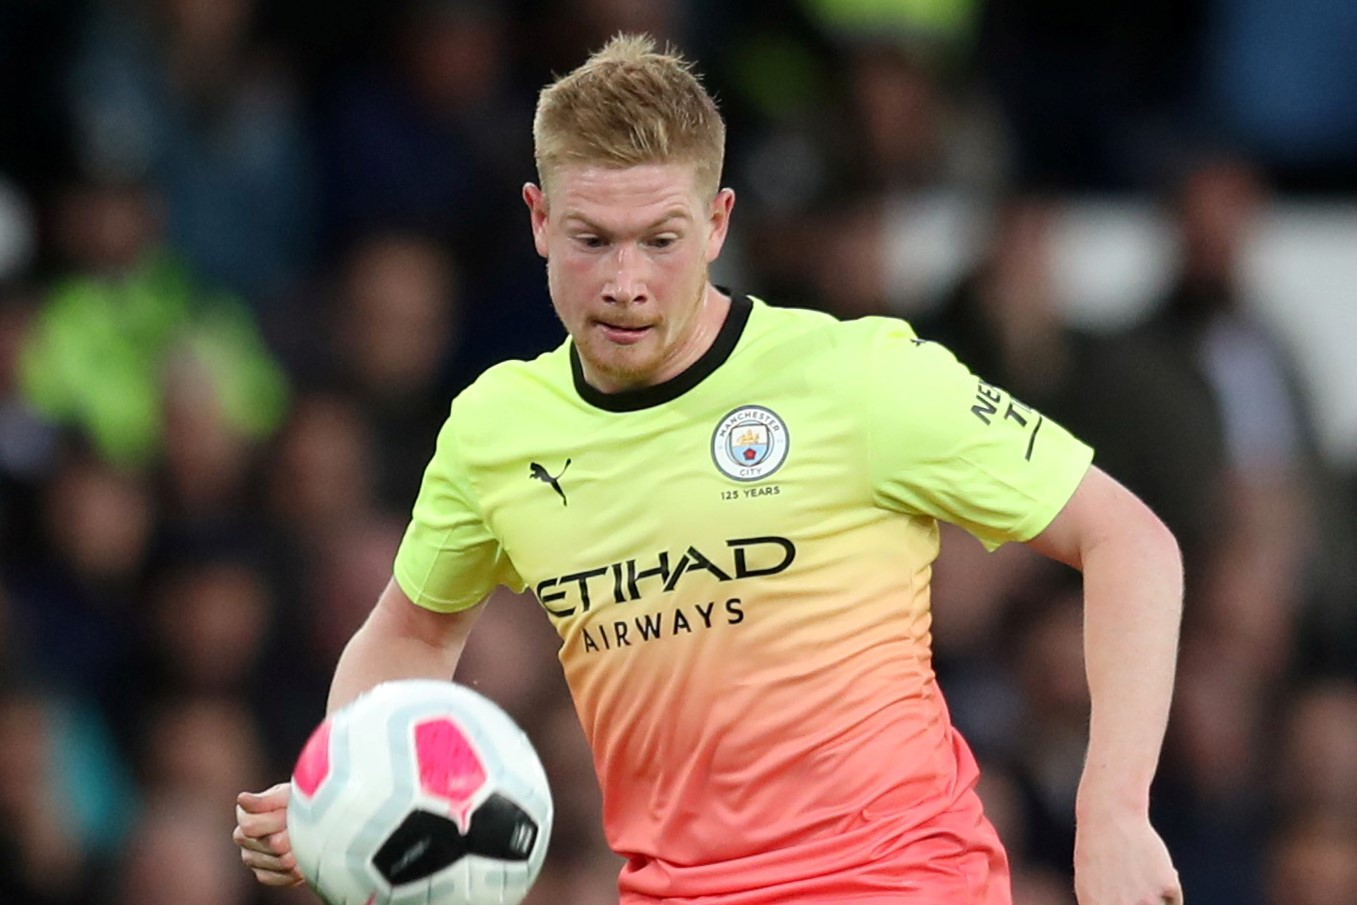 De Bruyne Rises To Top Of Fantasy Points List